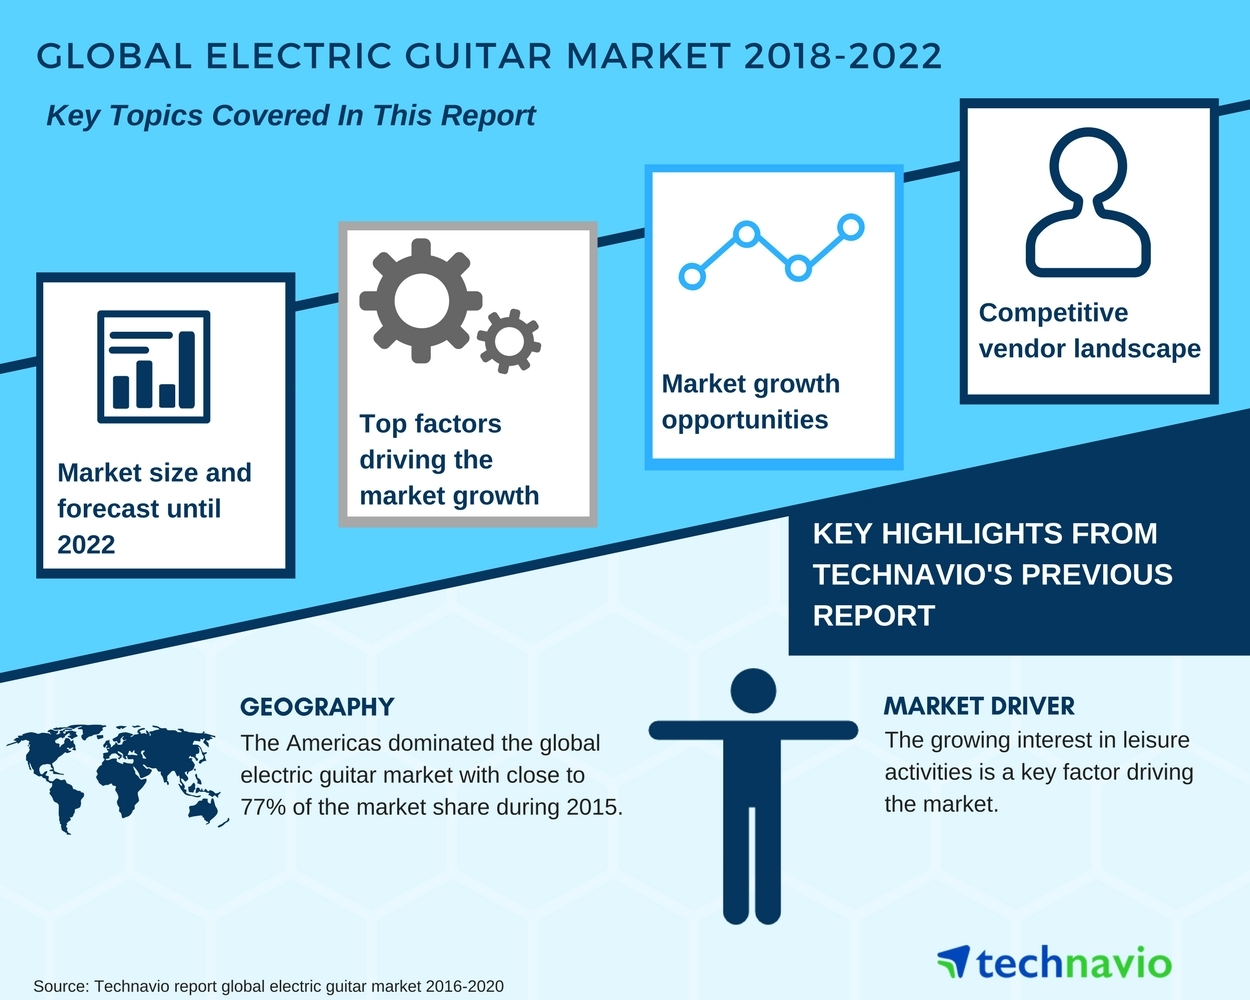 Global Electric Guitar Market Growing Interest In Leisure How To Wire An Activities Boost Growth Technavio Business